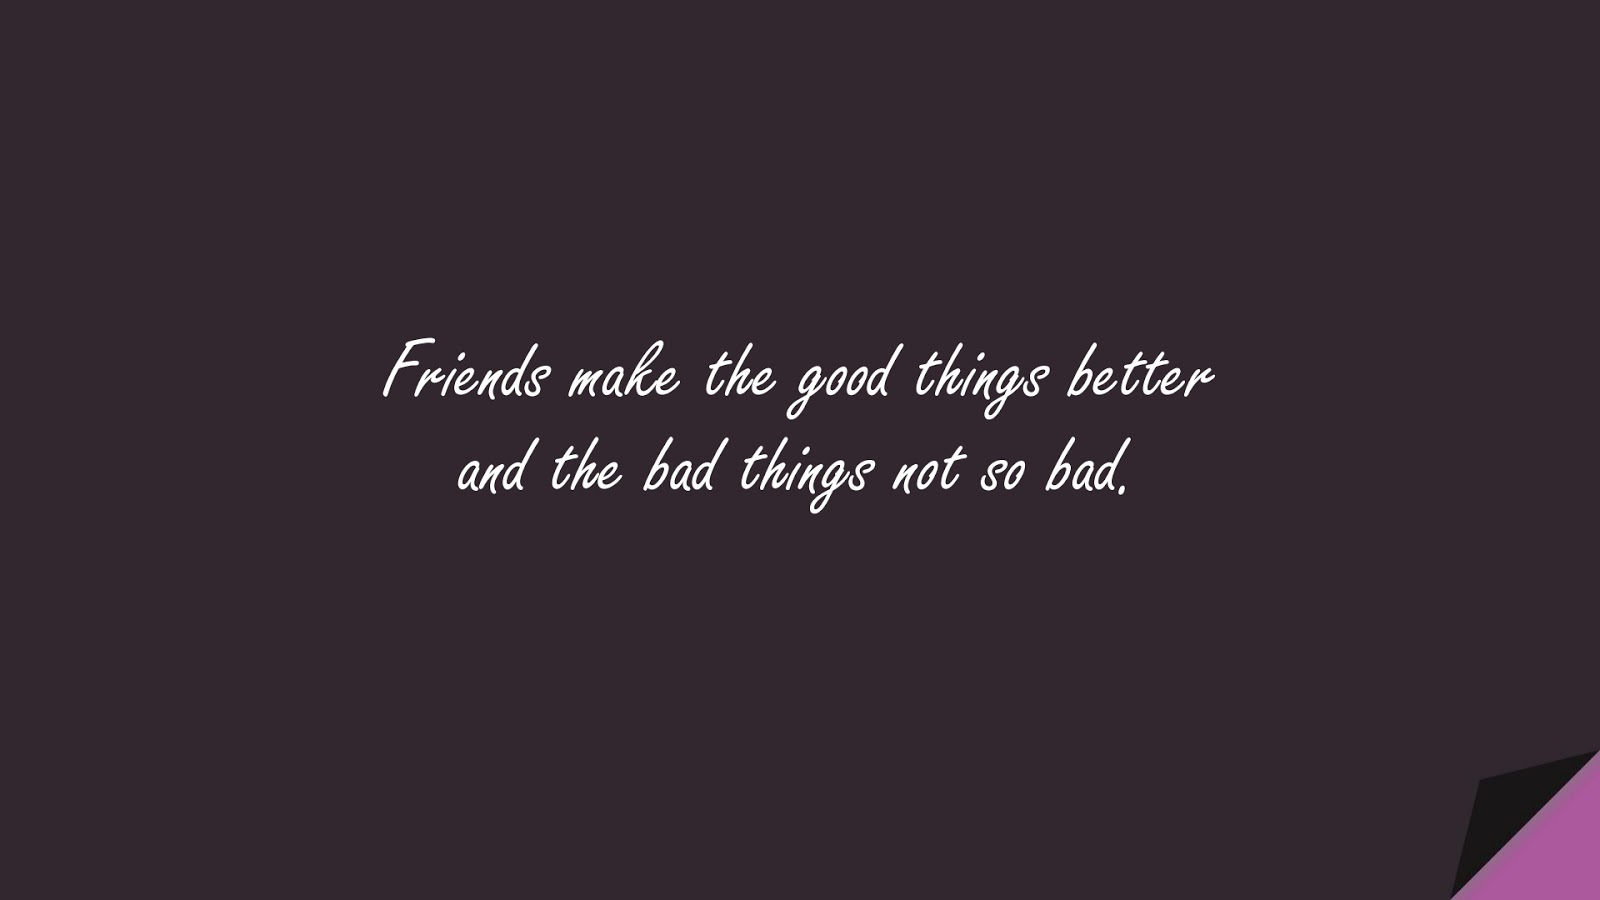 Friends make the good things better and the bad things not so bad.FALSE